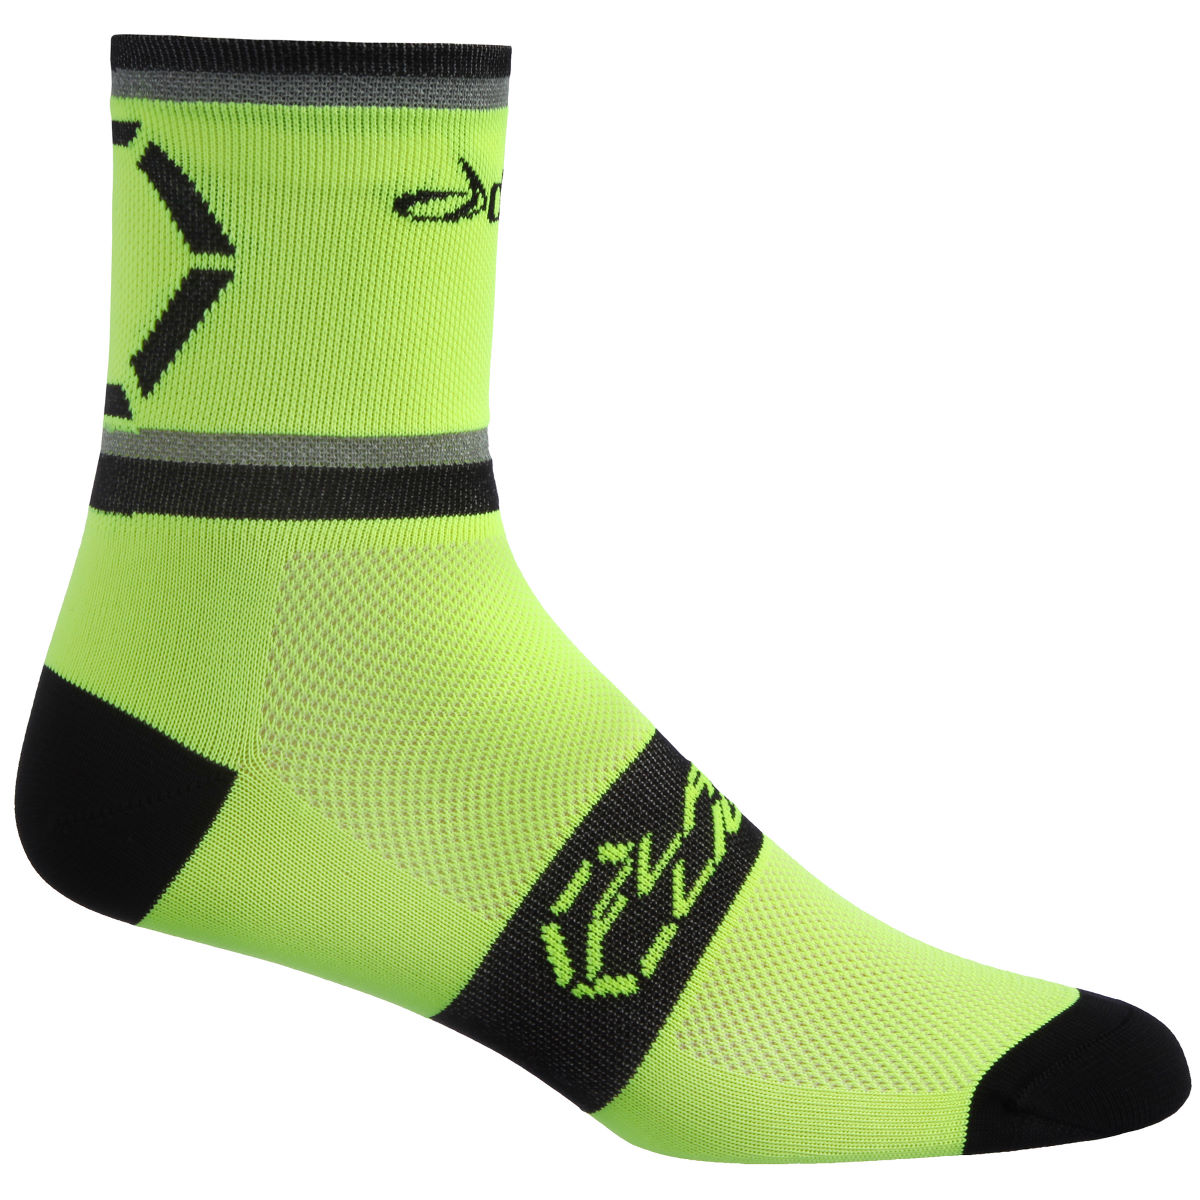 Dhb flashlight socks cycling socks fluro aw16 nu0450